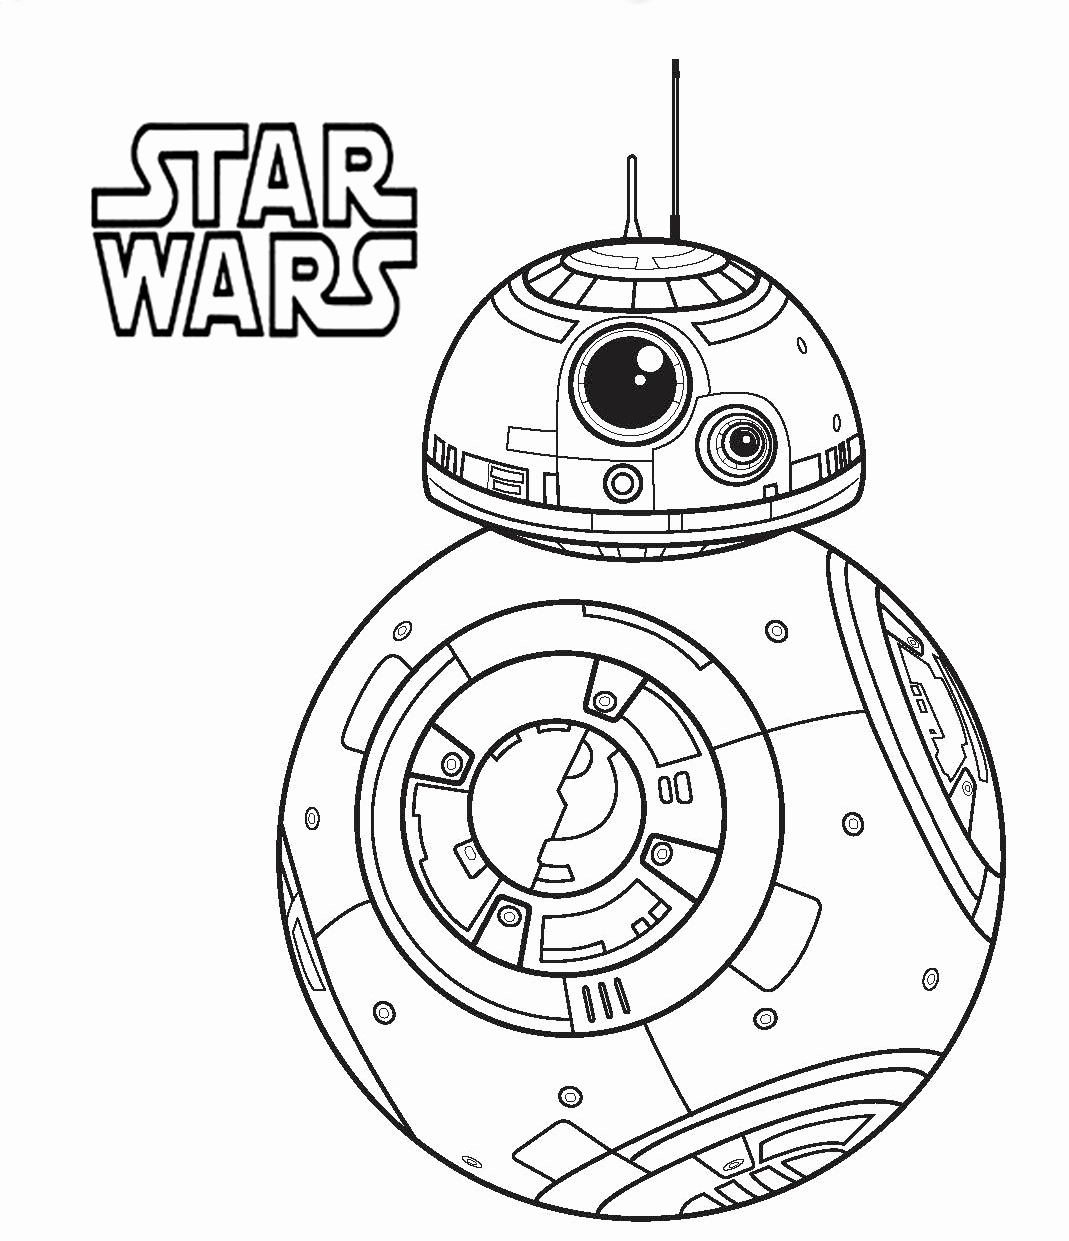 death star coloring sheet death star coloring page at getcoloringscom free sheet star death coloring